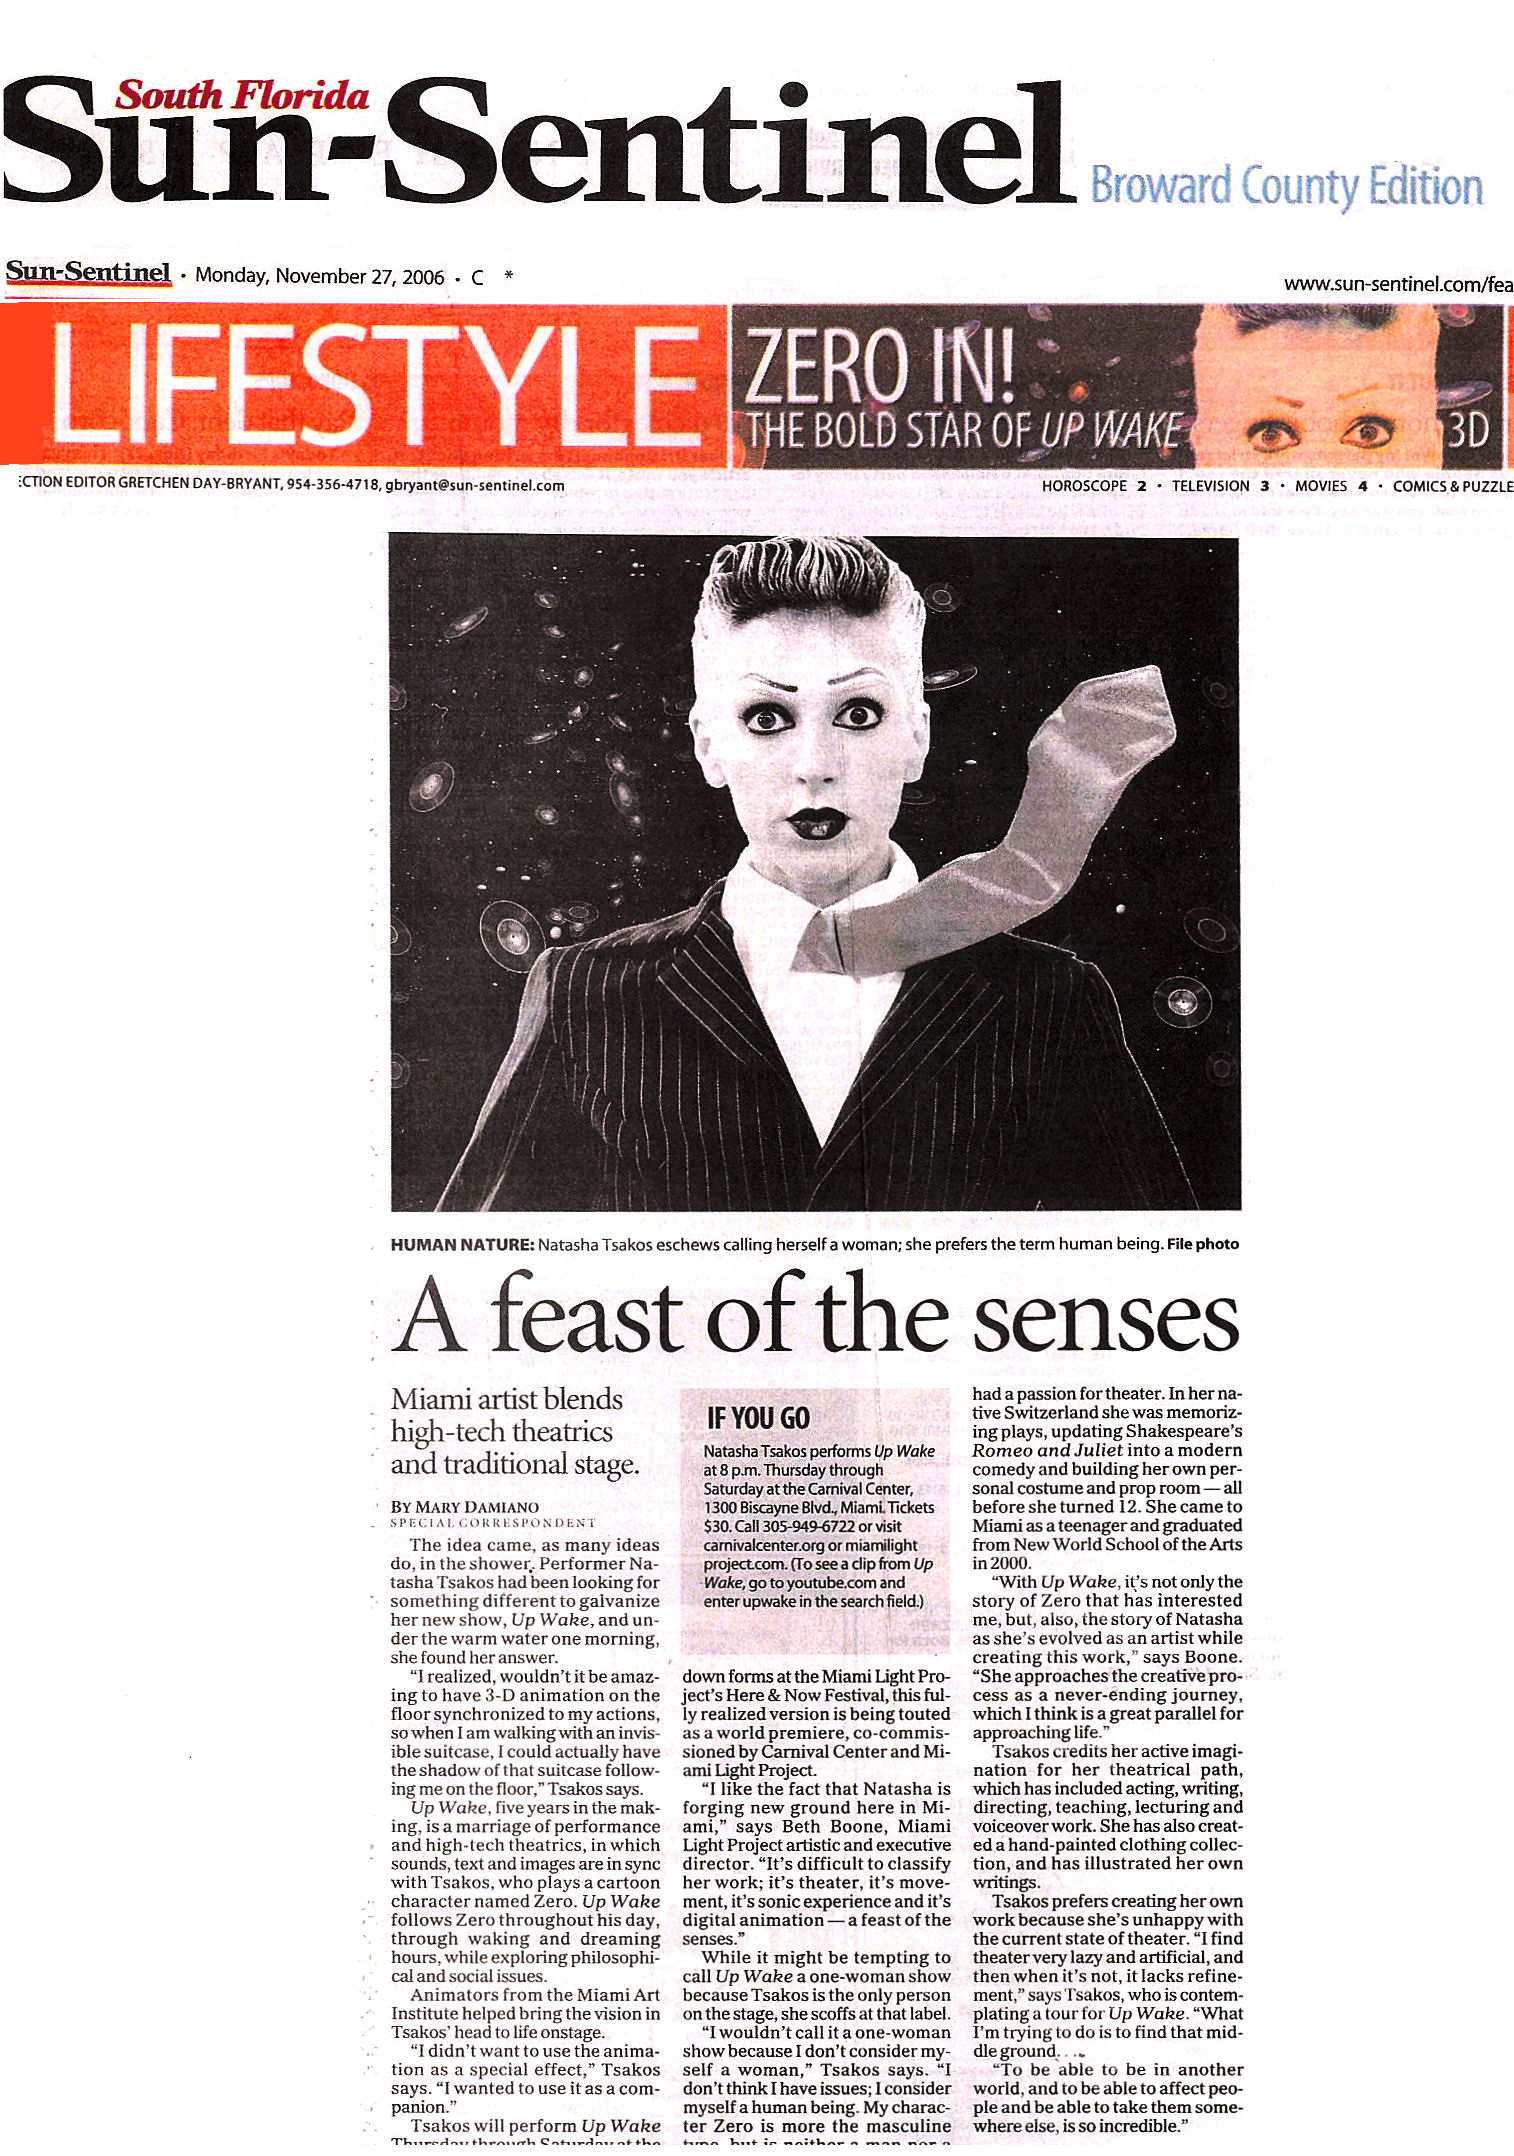 SUN SENTINEL A Feast of the Senses